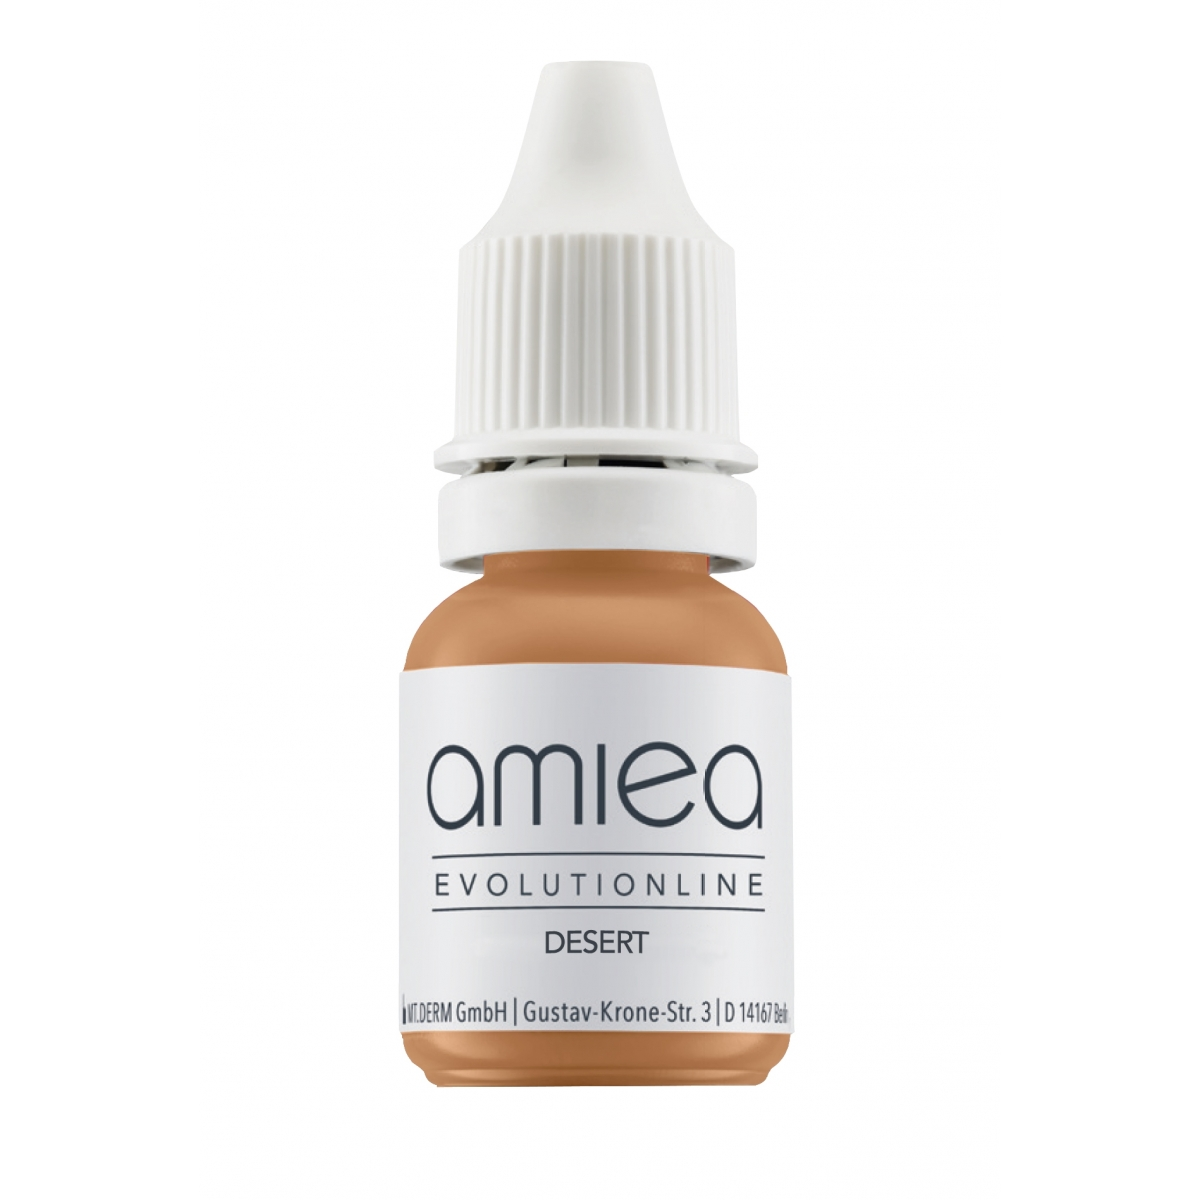 EVOLUTION LINE (5ml) - PIGMENT DESERT EVOLUTIONLINE AMIEA (5 ml)